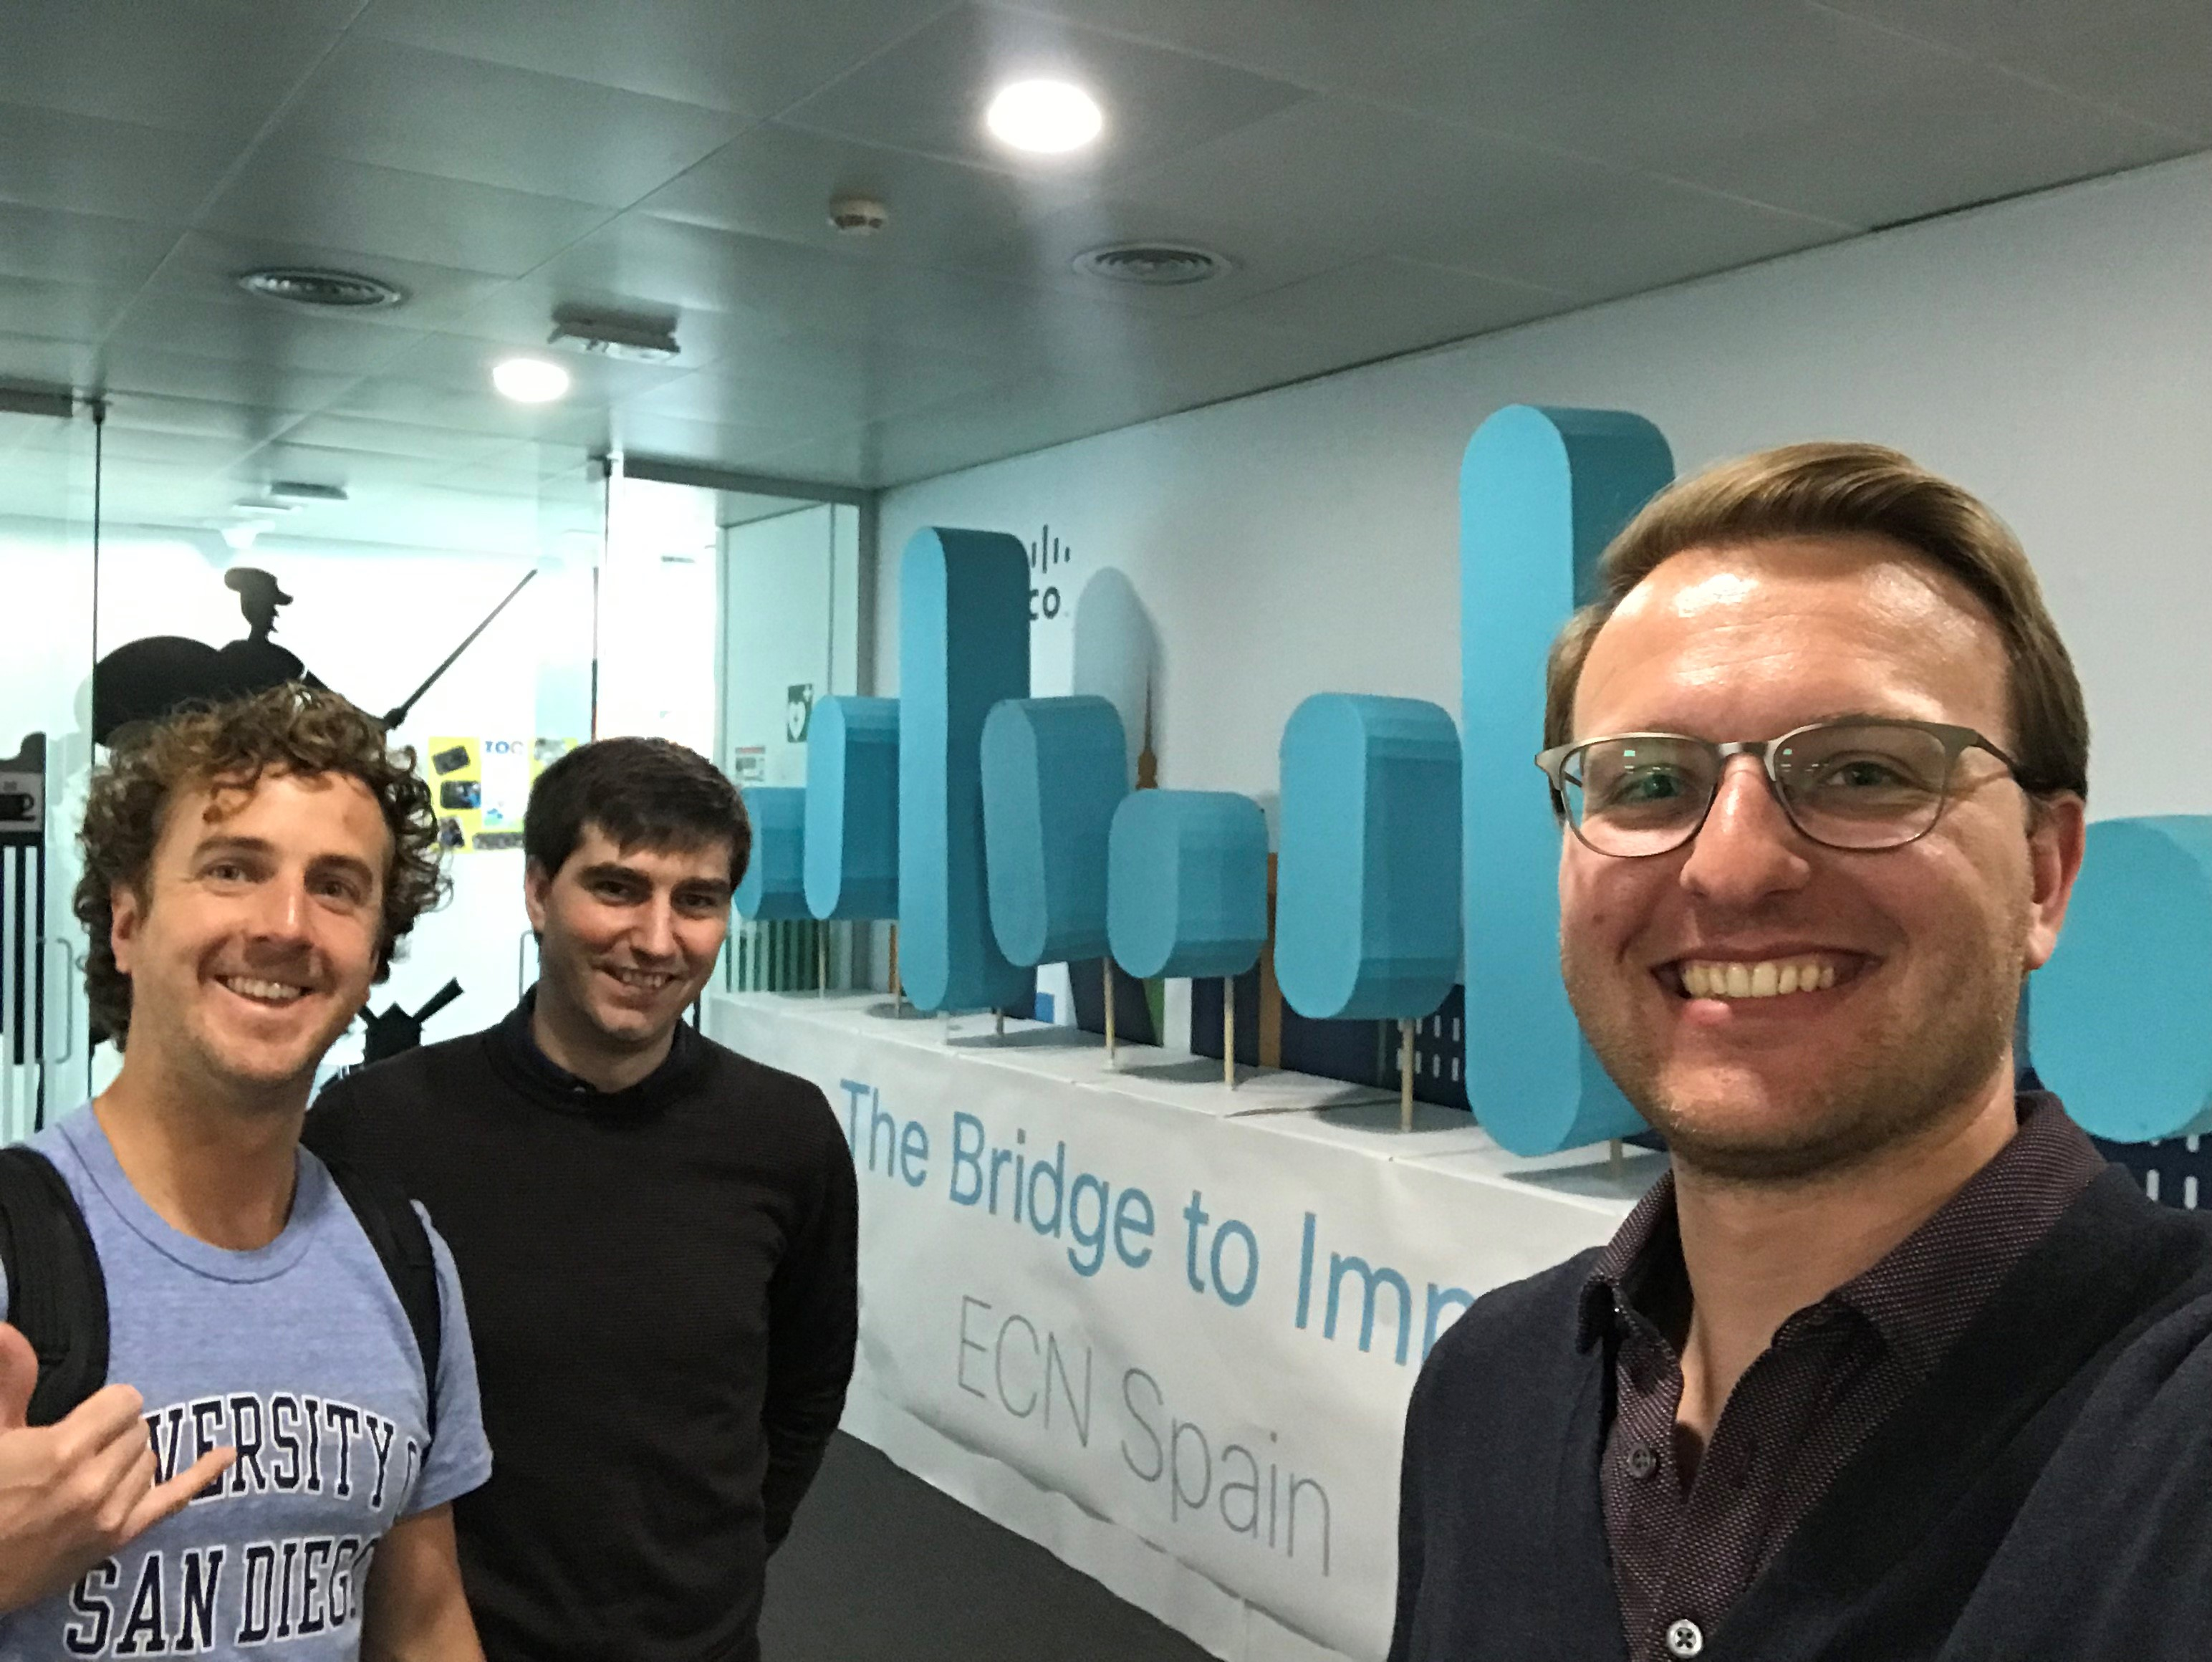 Daivd and his peers stand in front of a sculpture of the Cisco logo at Cisco Spain.